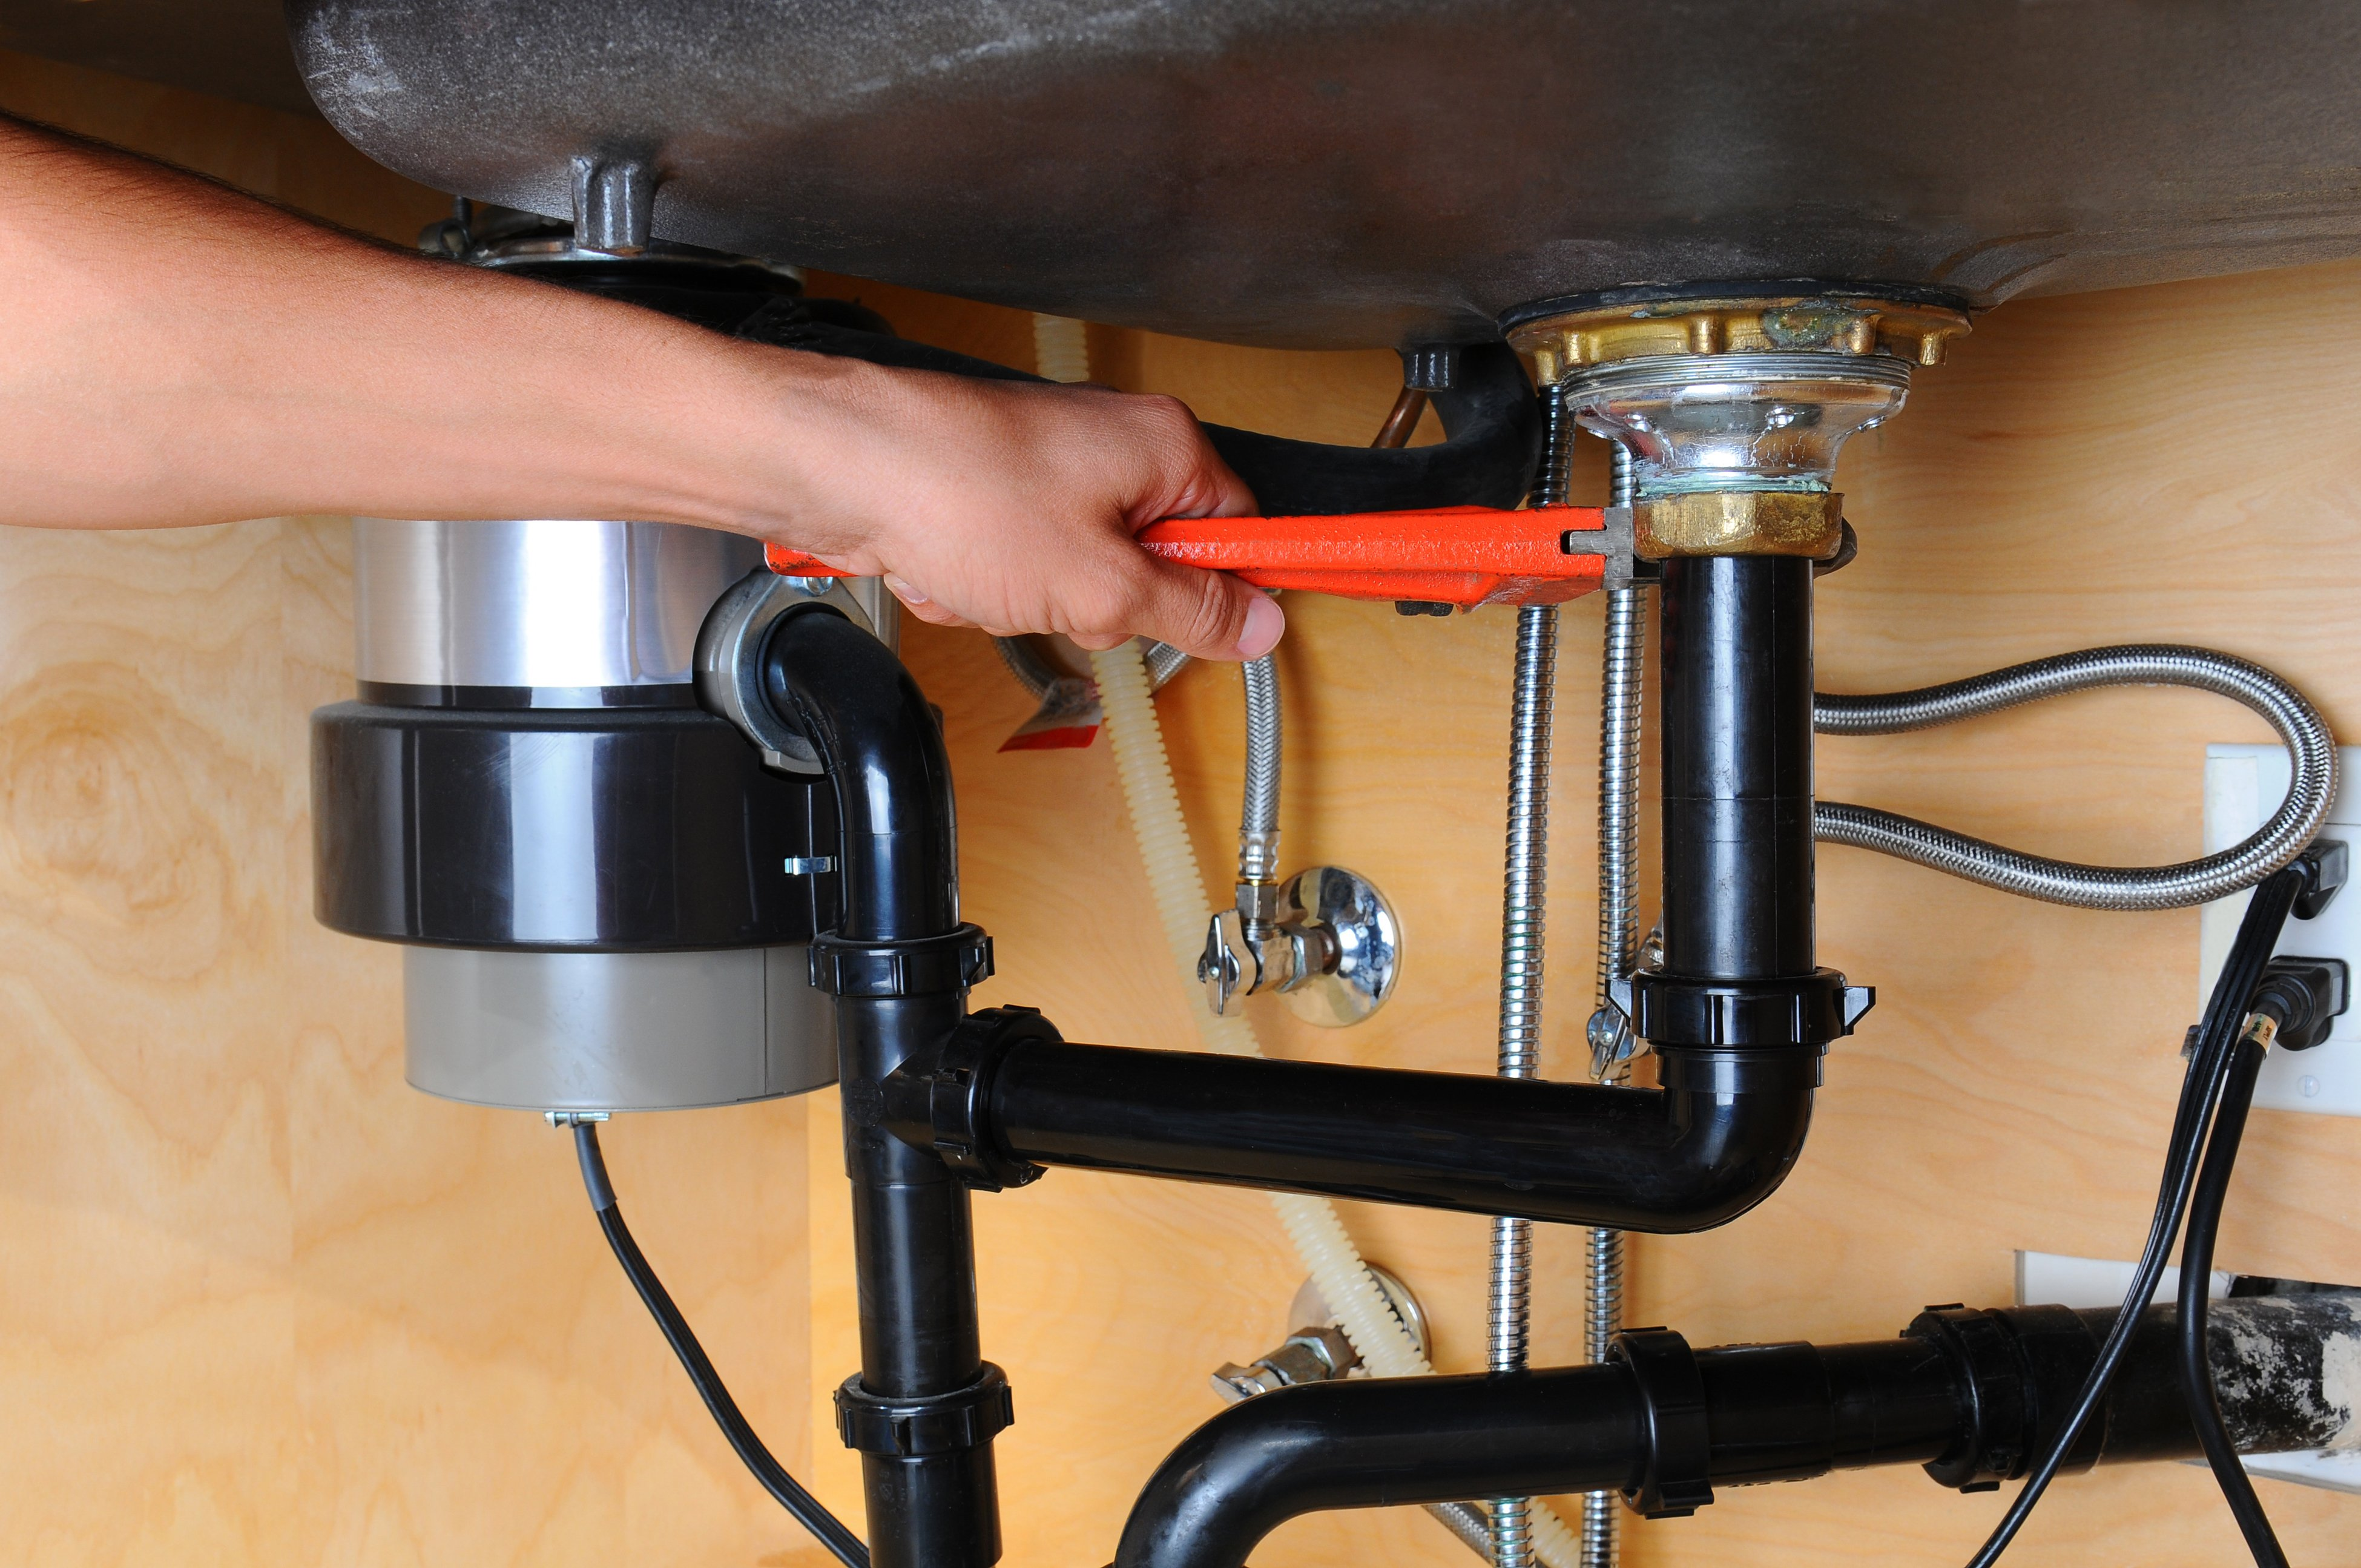 how to unclog a kitchen sink that has garbage disposal kitchen sink clogged Fix Clogged Kitchen Sink Garbage Disposal Best Ideas